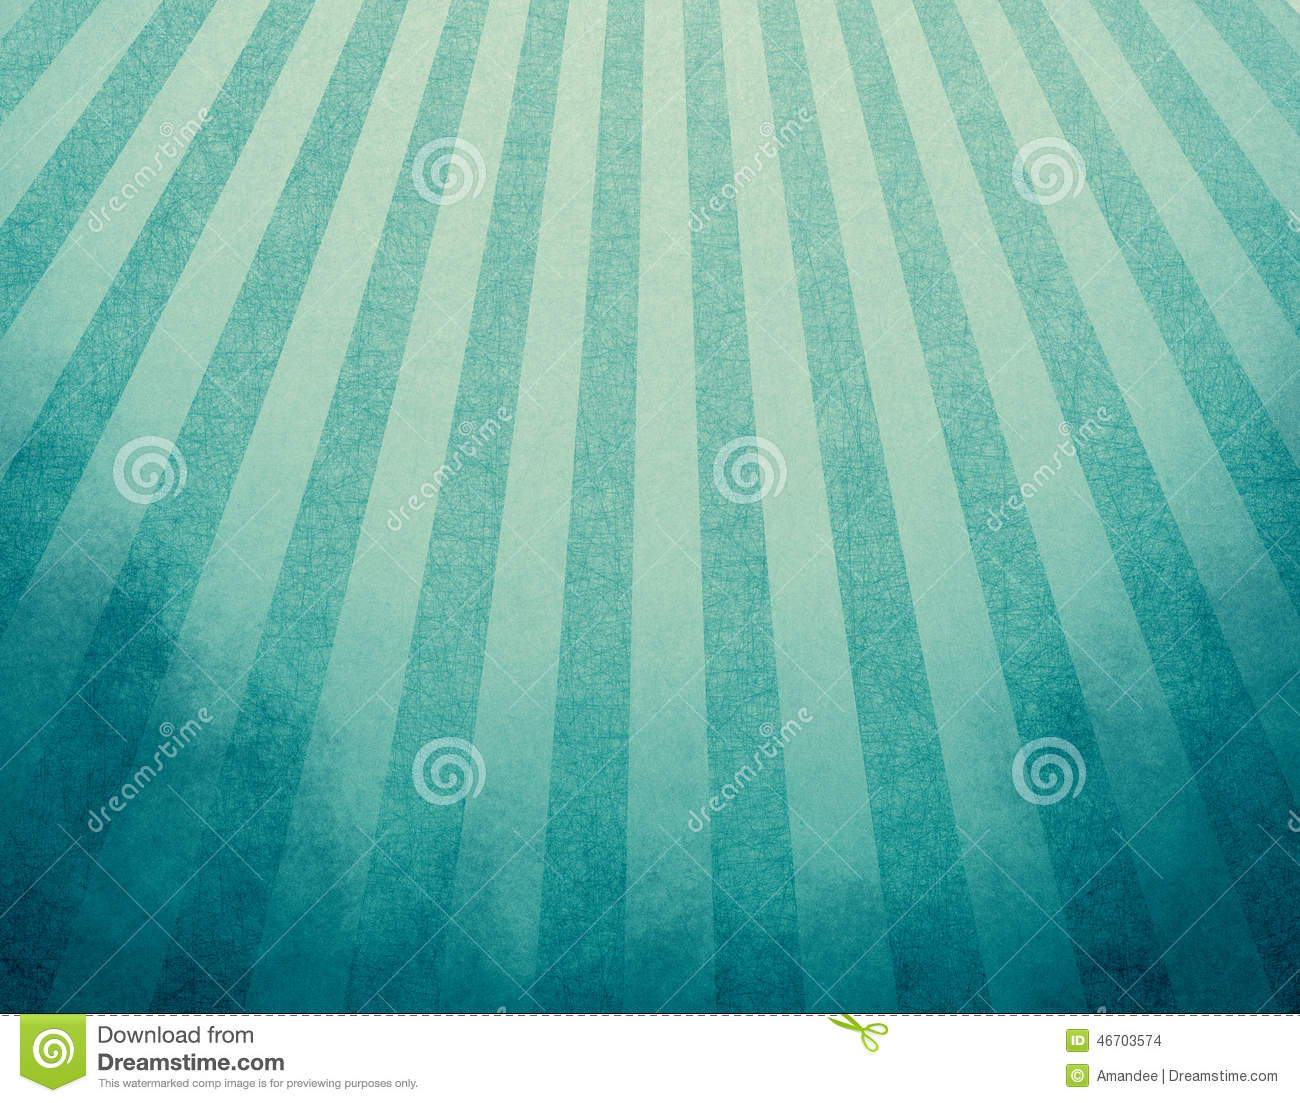 Yellowed blue retro background with faded grunge borders and soft blue and yellow stripes sunburst effect or starburst design